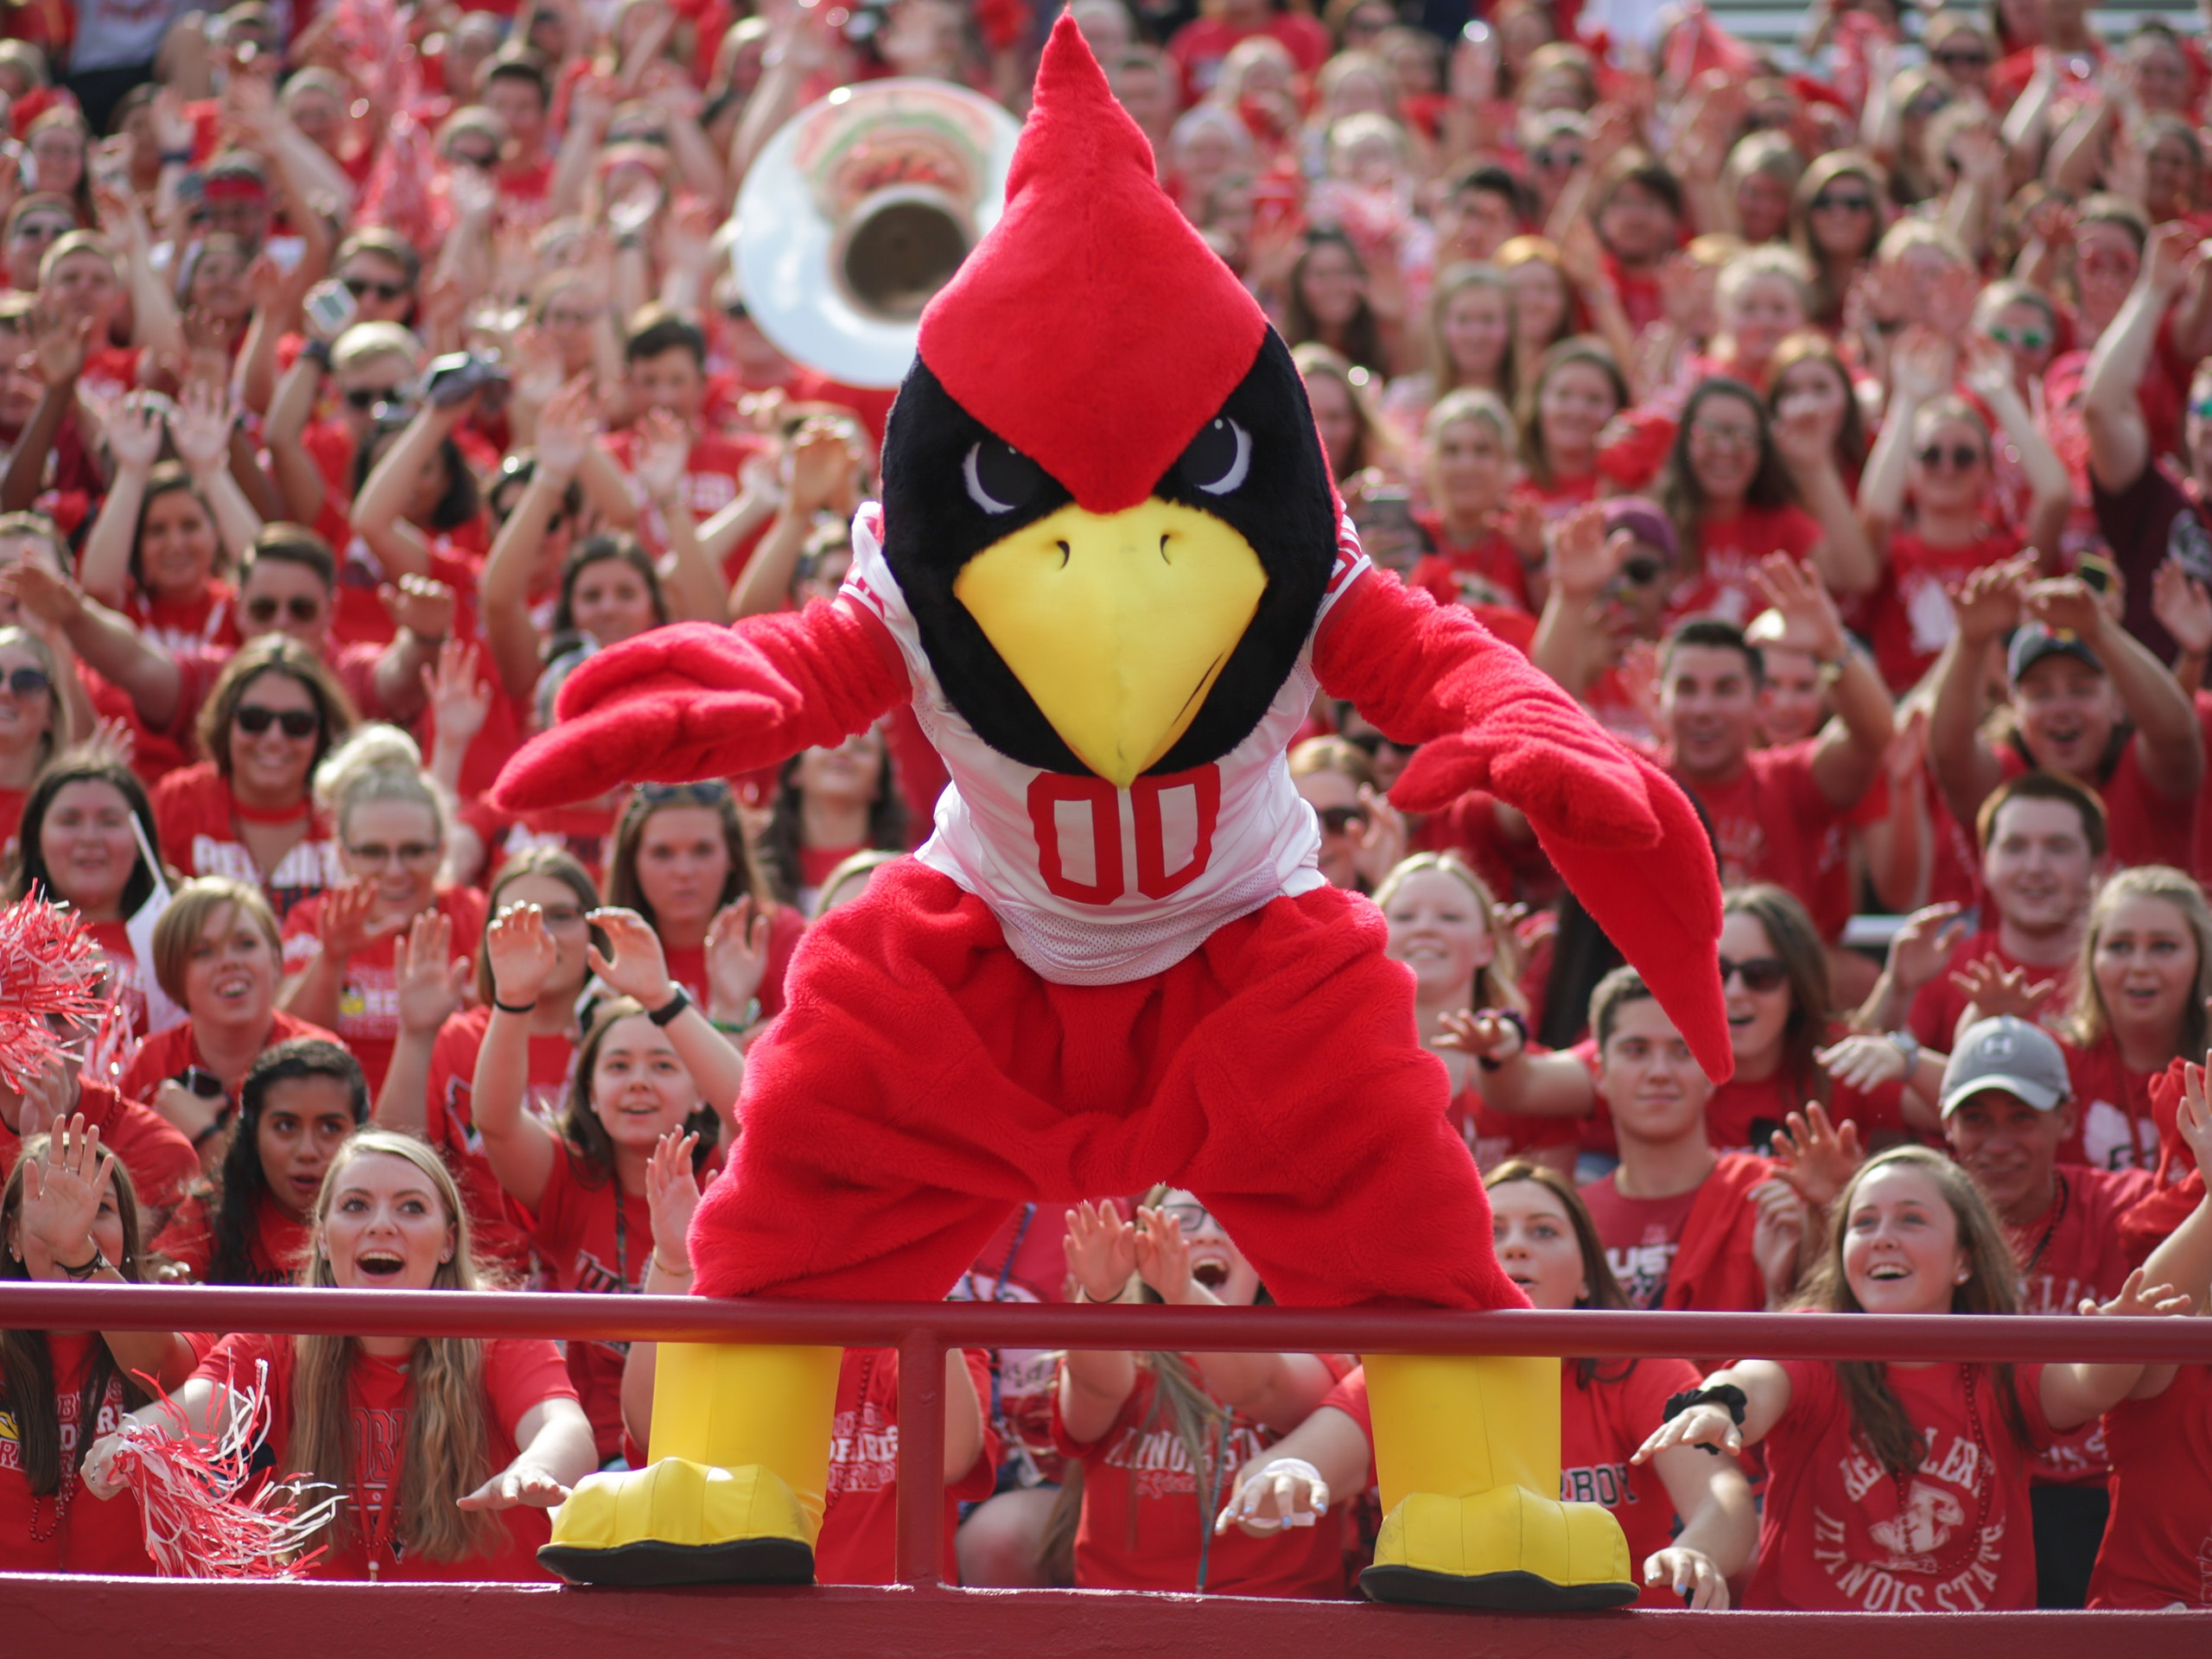 Reggie standing on a railing in front of a crowd of students in the football stadium.